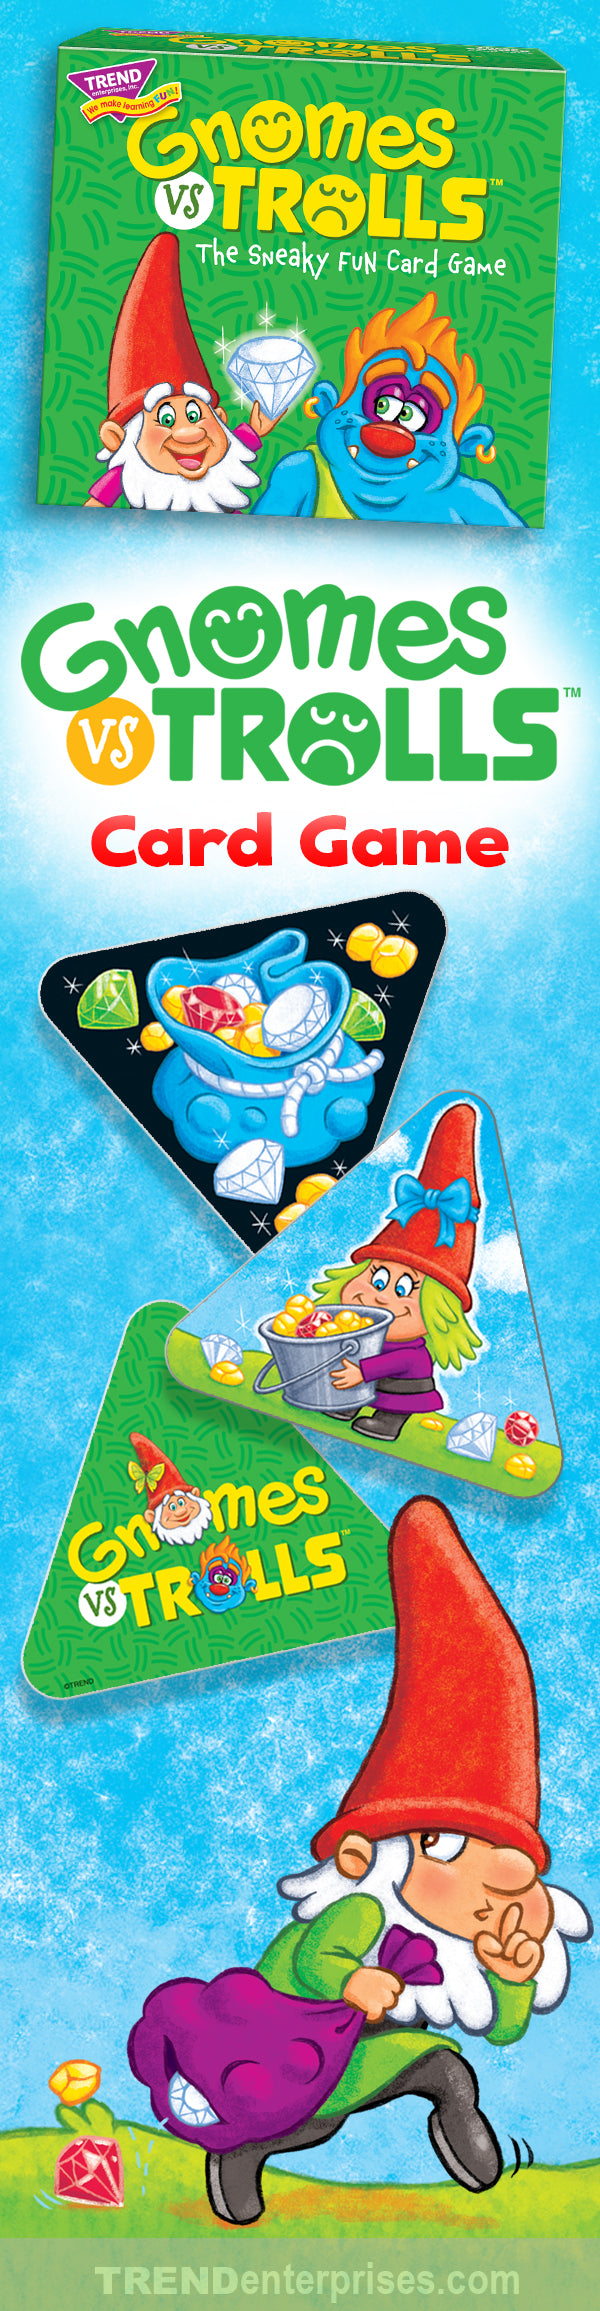 GNOMES vs TROLLS™ fun card game for kids made in USA! Outwit tricky trolls to gather troves of treasure. You'll have to be nifty enough to find gnomes to guard it … before the trolls take over!